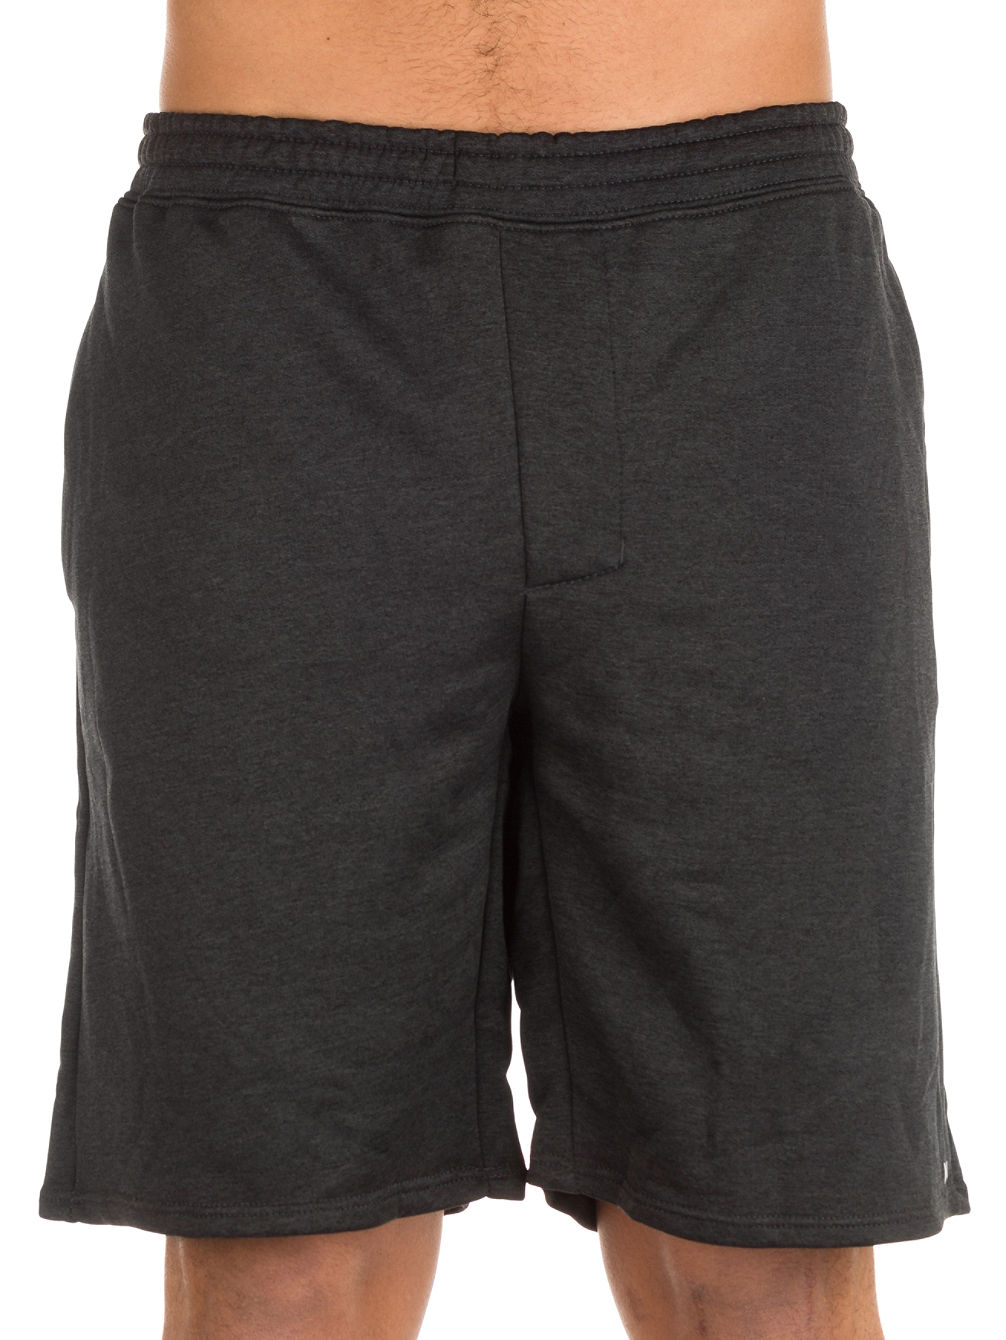 Dri-Fit Expedition Shorts